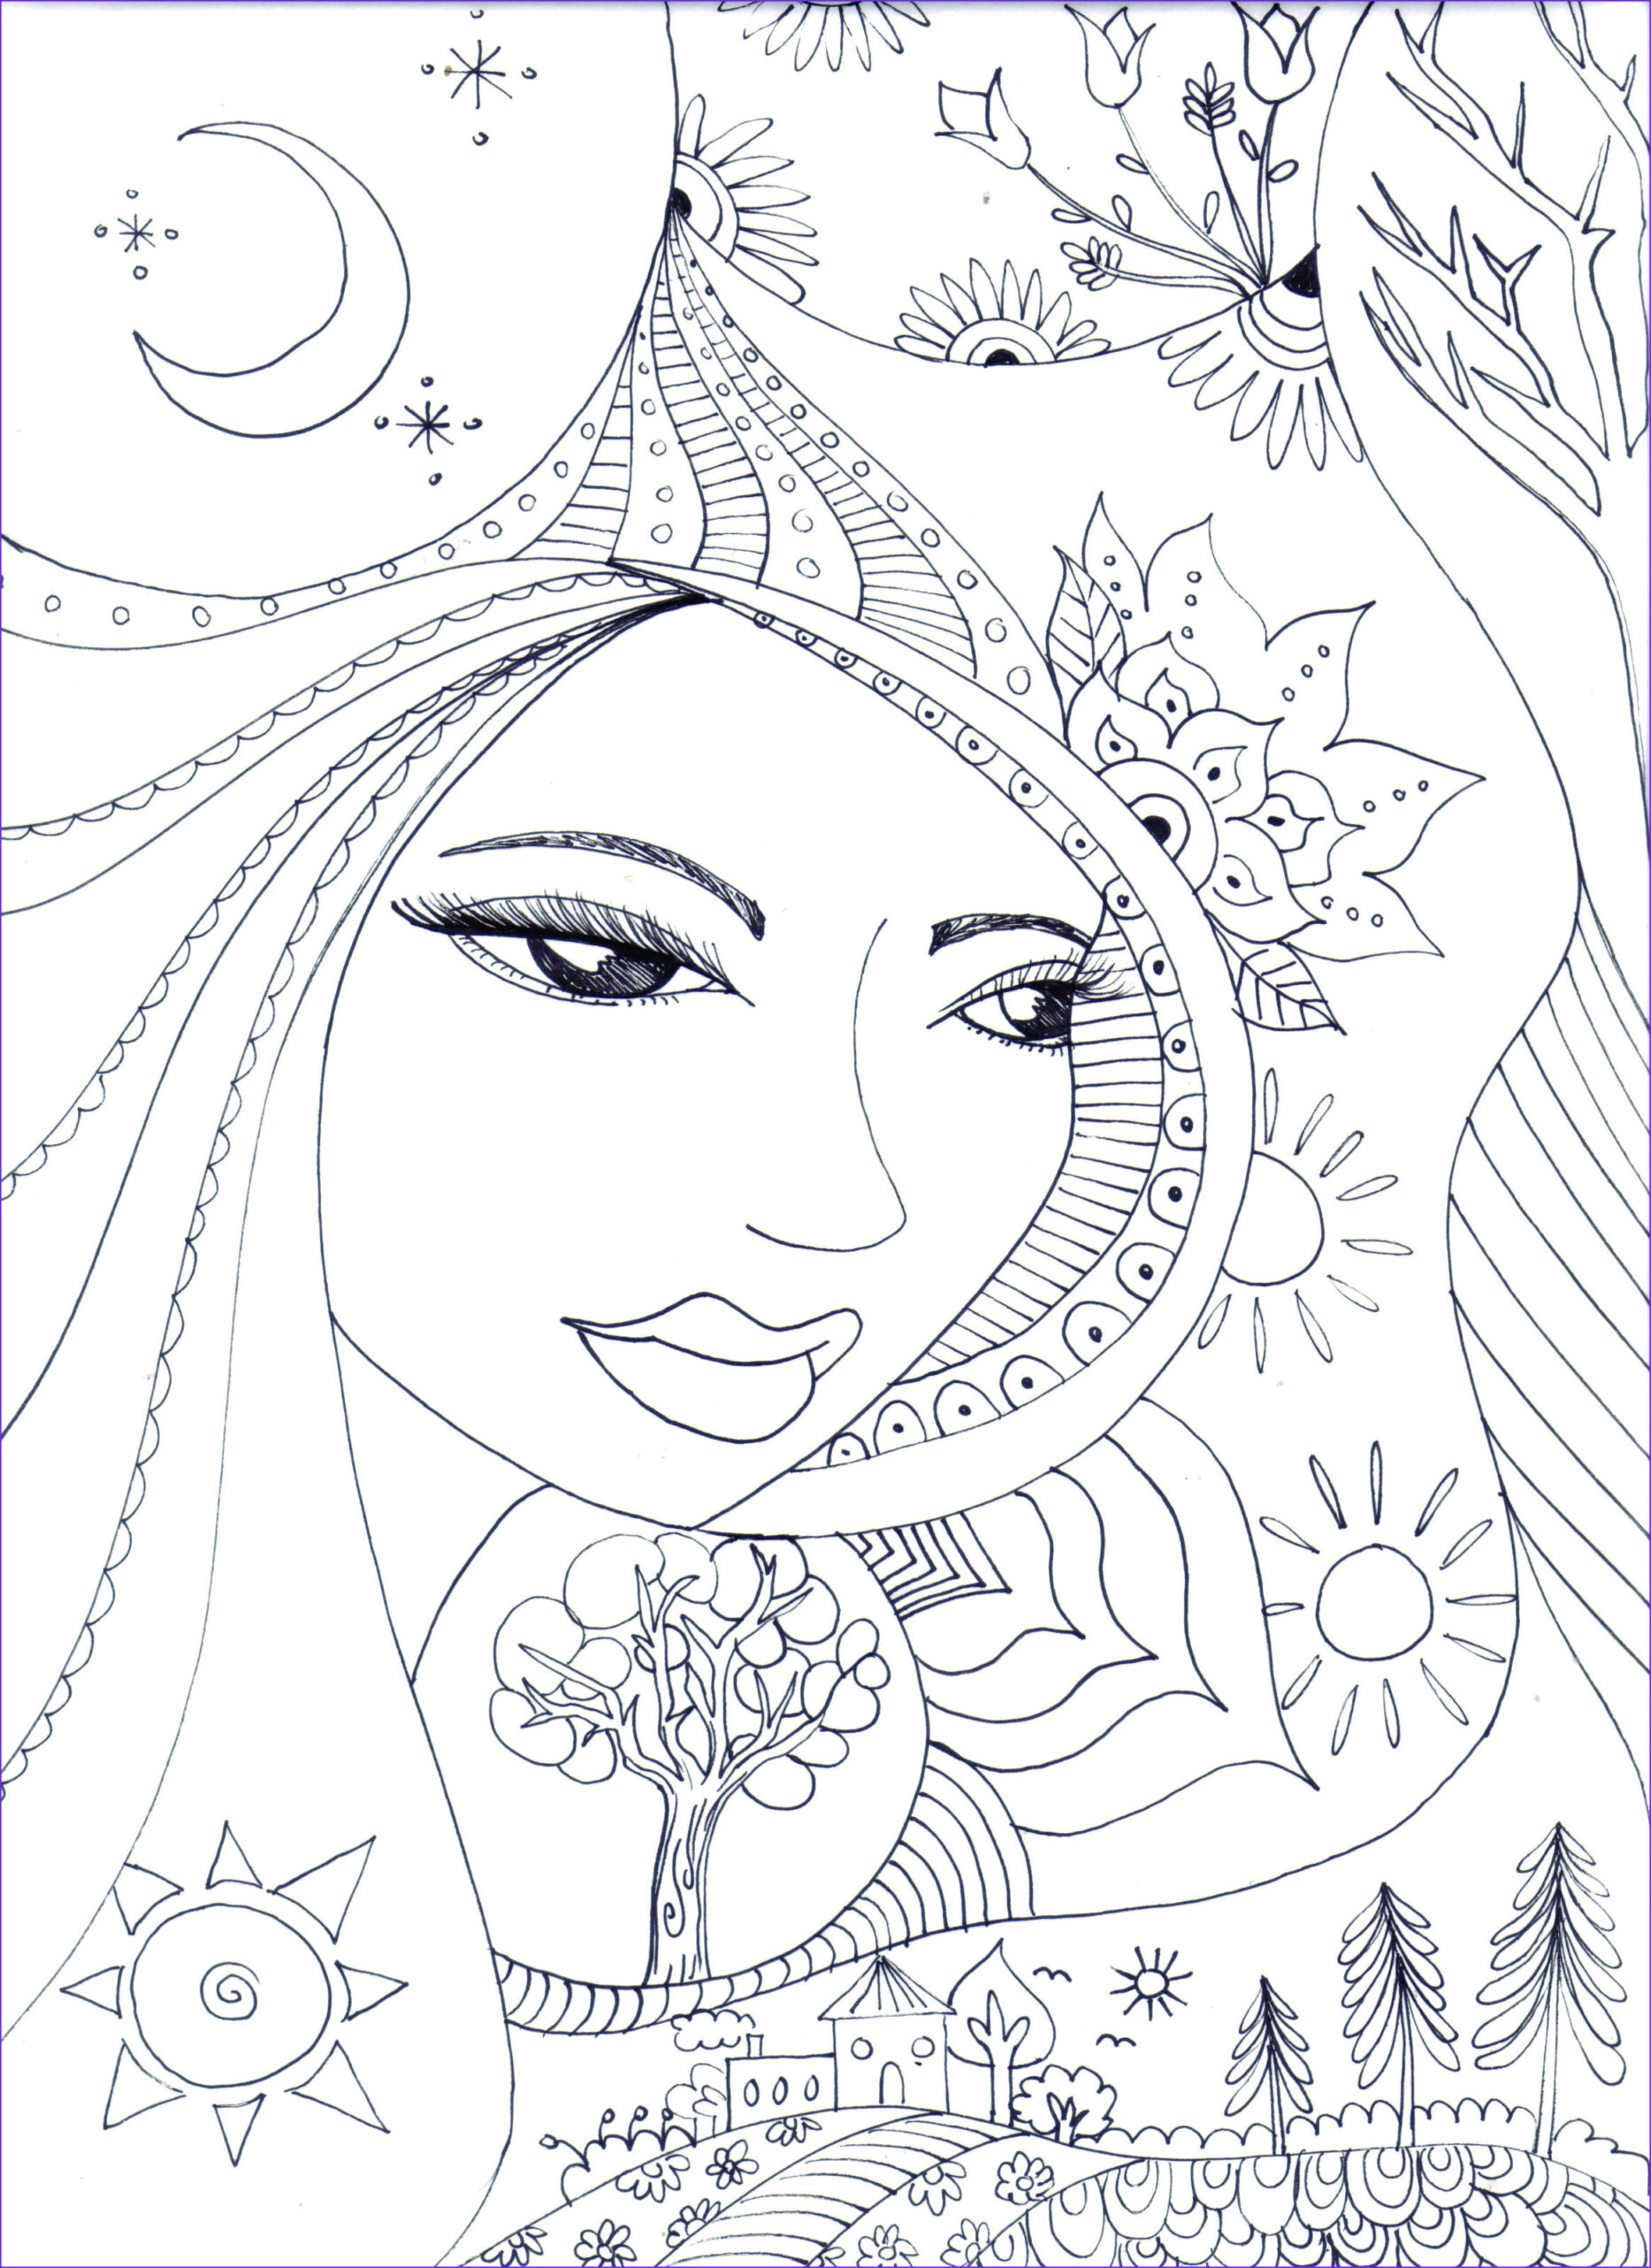 Coloring Page S Luxury Photography Free Coloring Pages for Adults